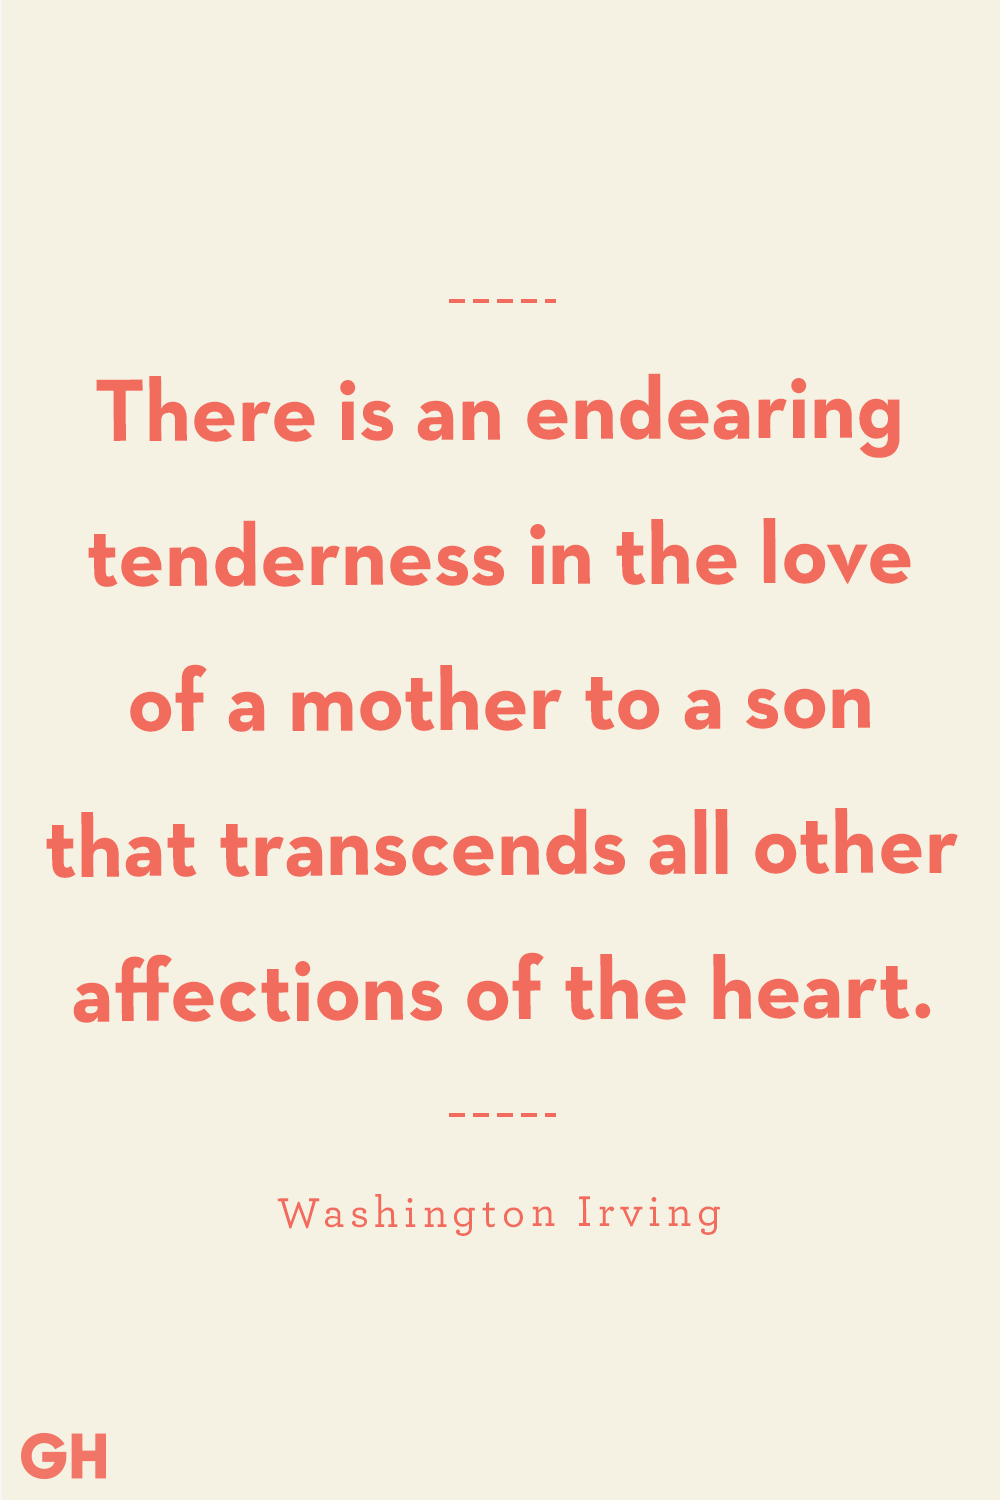 Quotes About Mothers And Sons : quotes, about, mothers, Heartfelt, Mother-Son, Quotes, Mother, Sayings